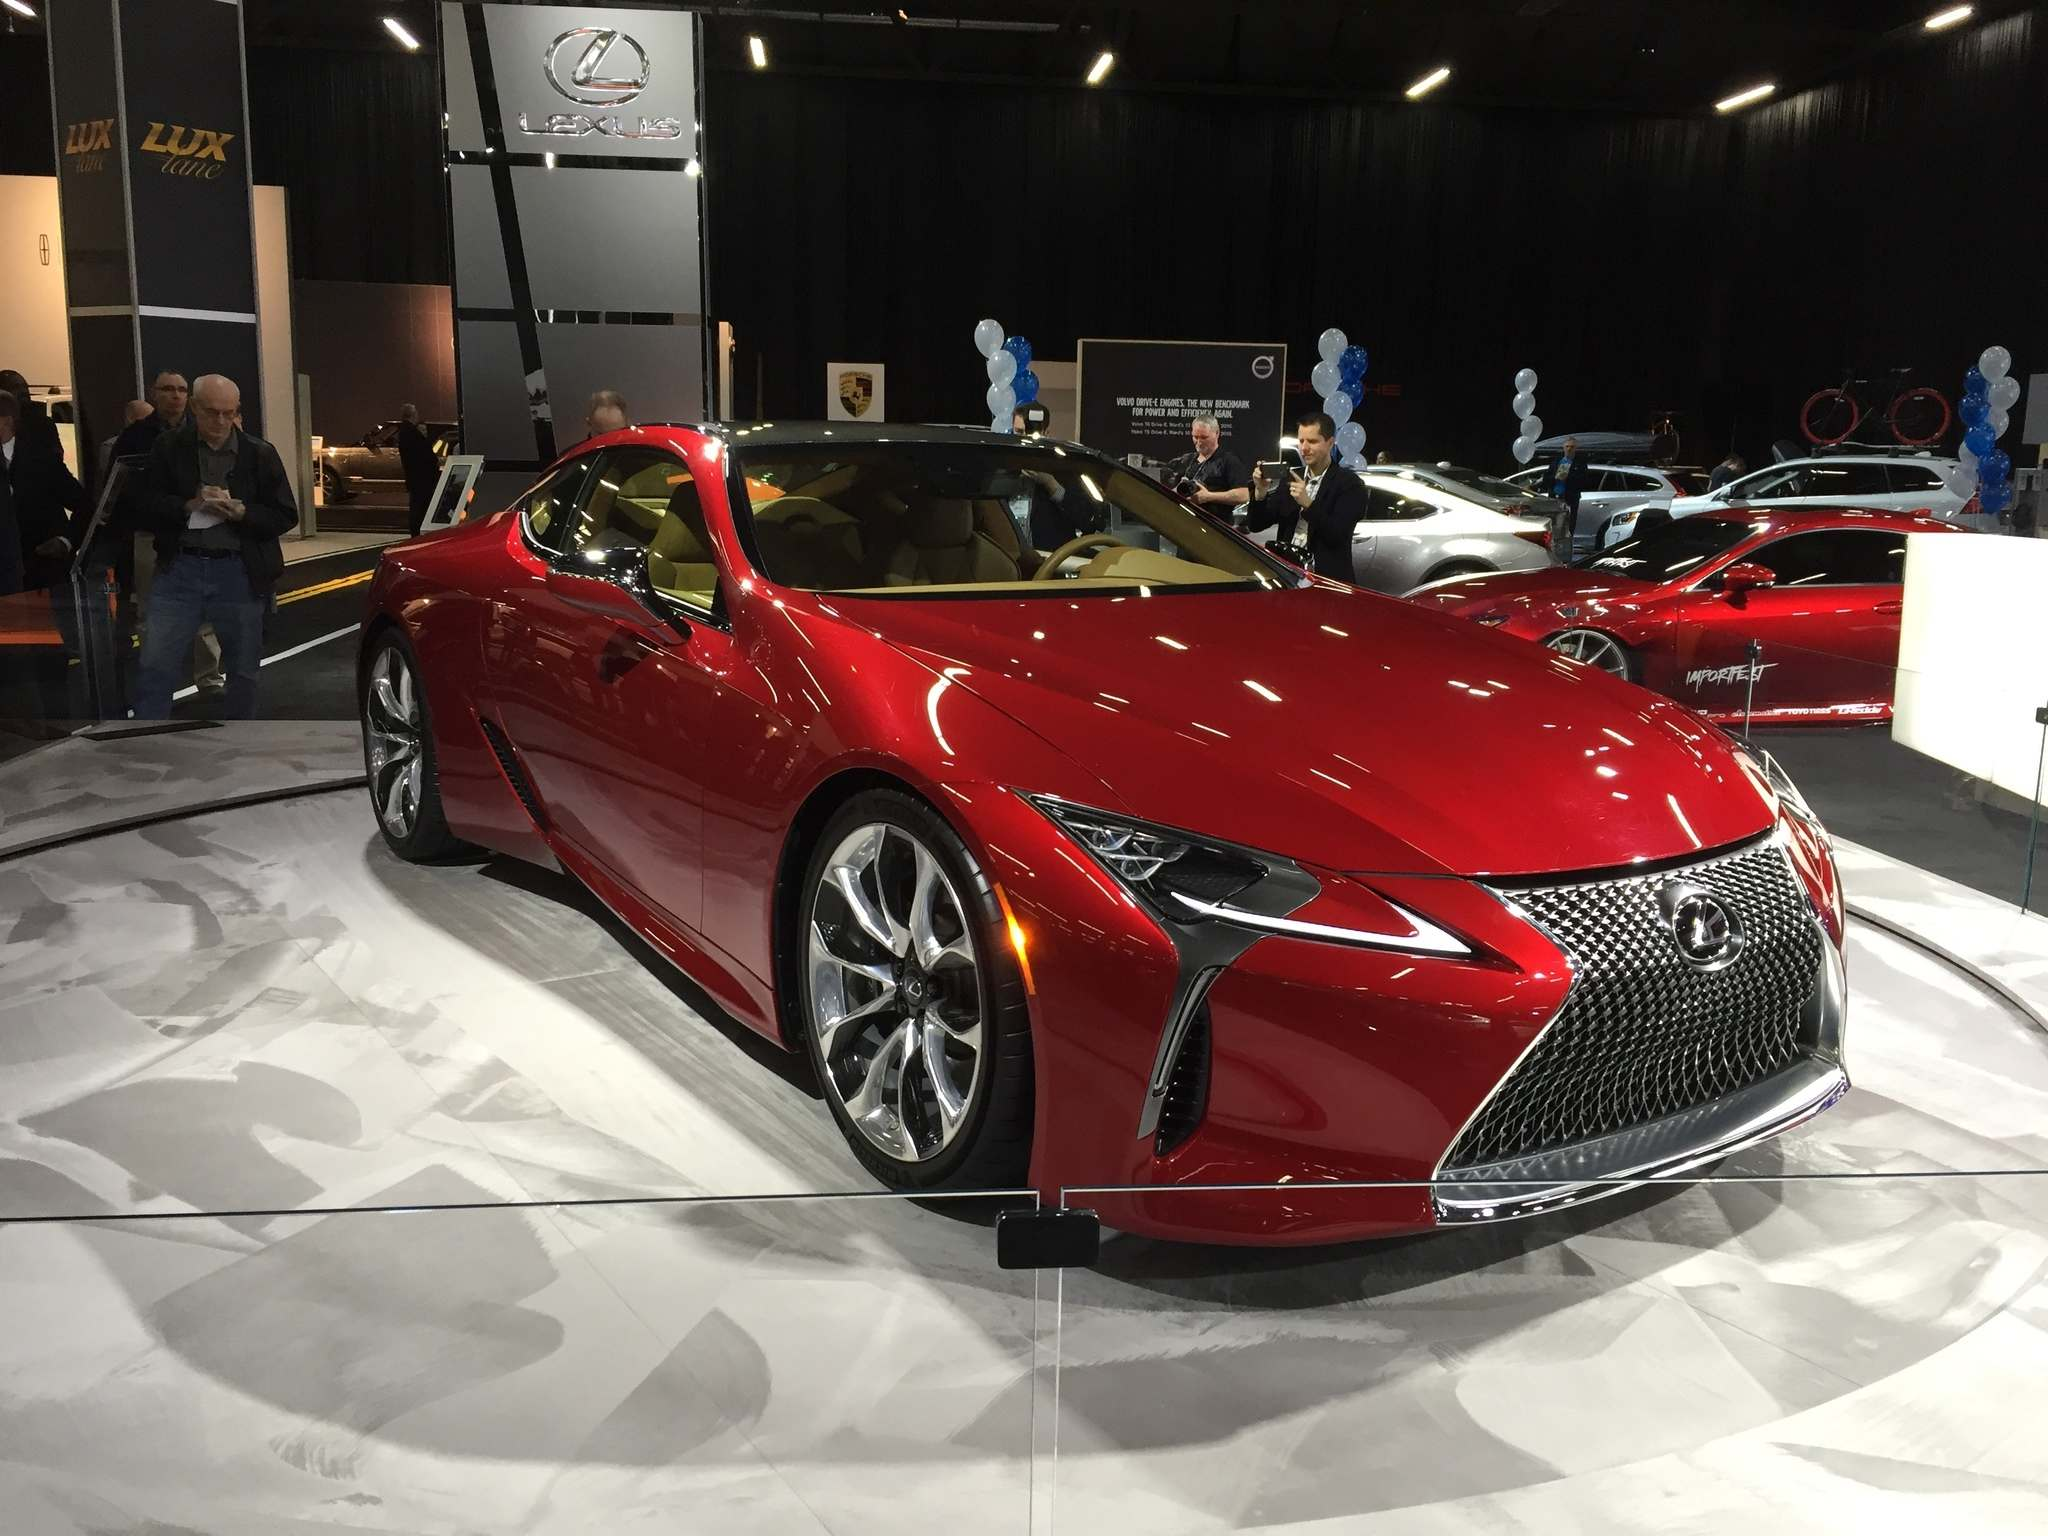 KELLY TAYLOR / WINNIPEG FREE PRESSThe new Lexus LC 500 is a sleek, luxury coupe powered by a 5.0-litre V-8 engine.